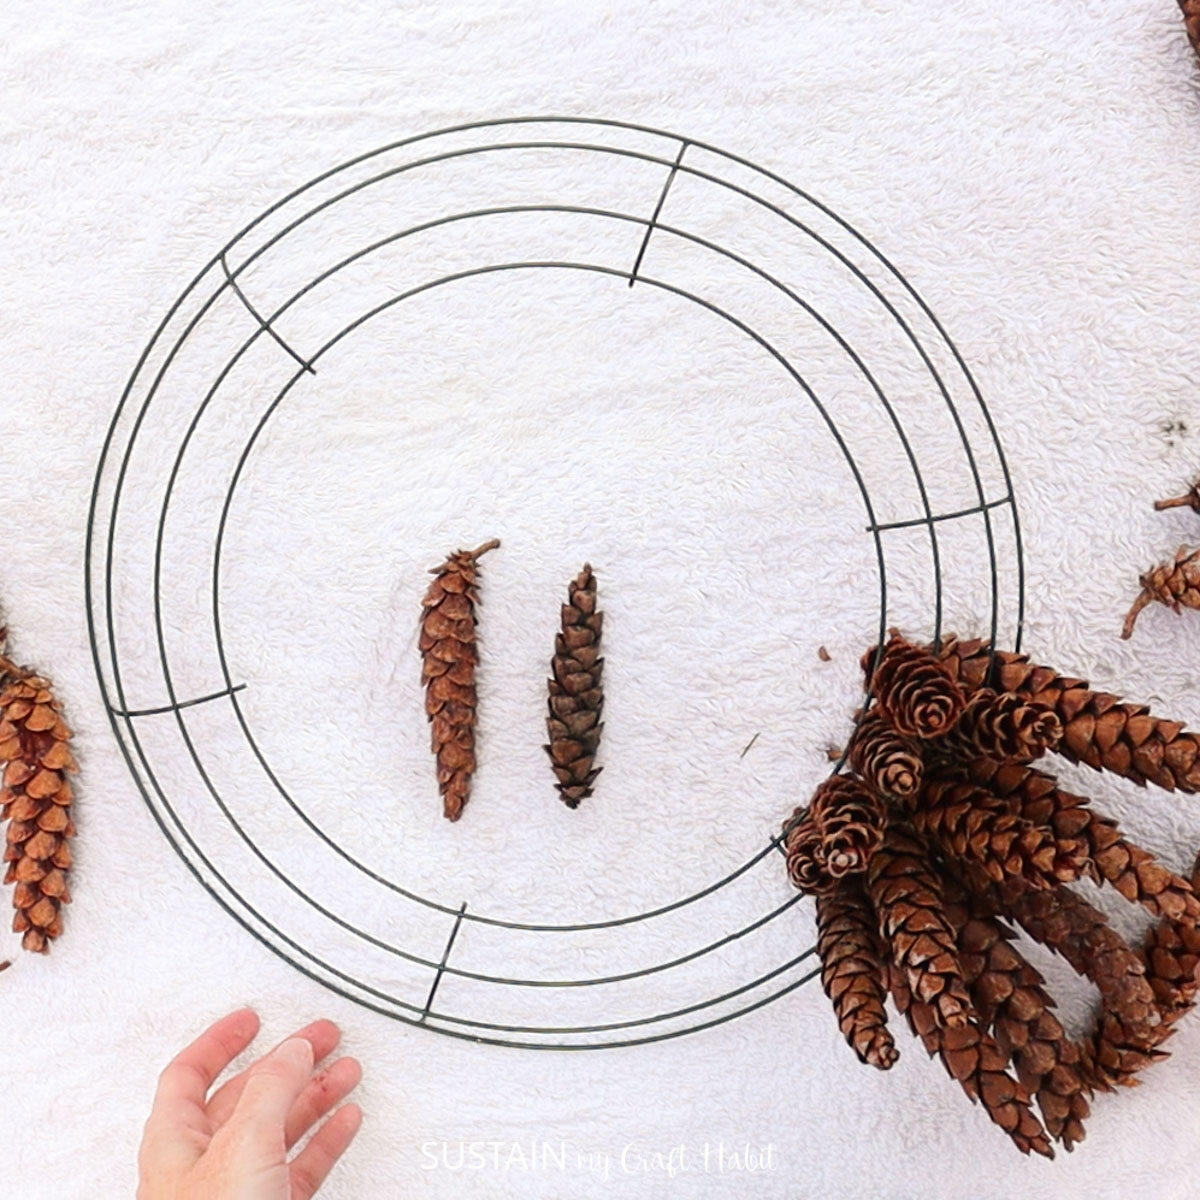 Adding more pinecones into the wreath form.